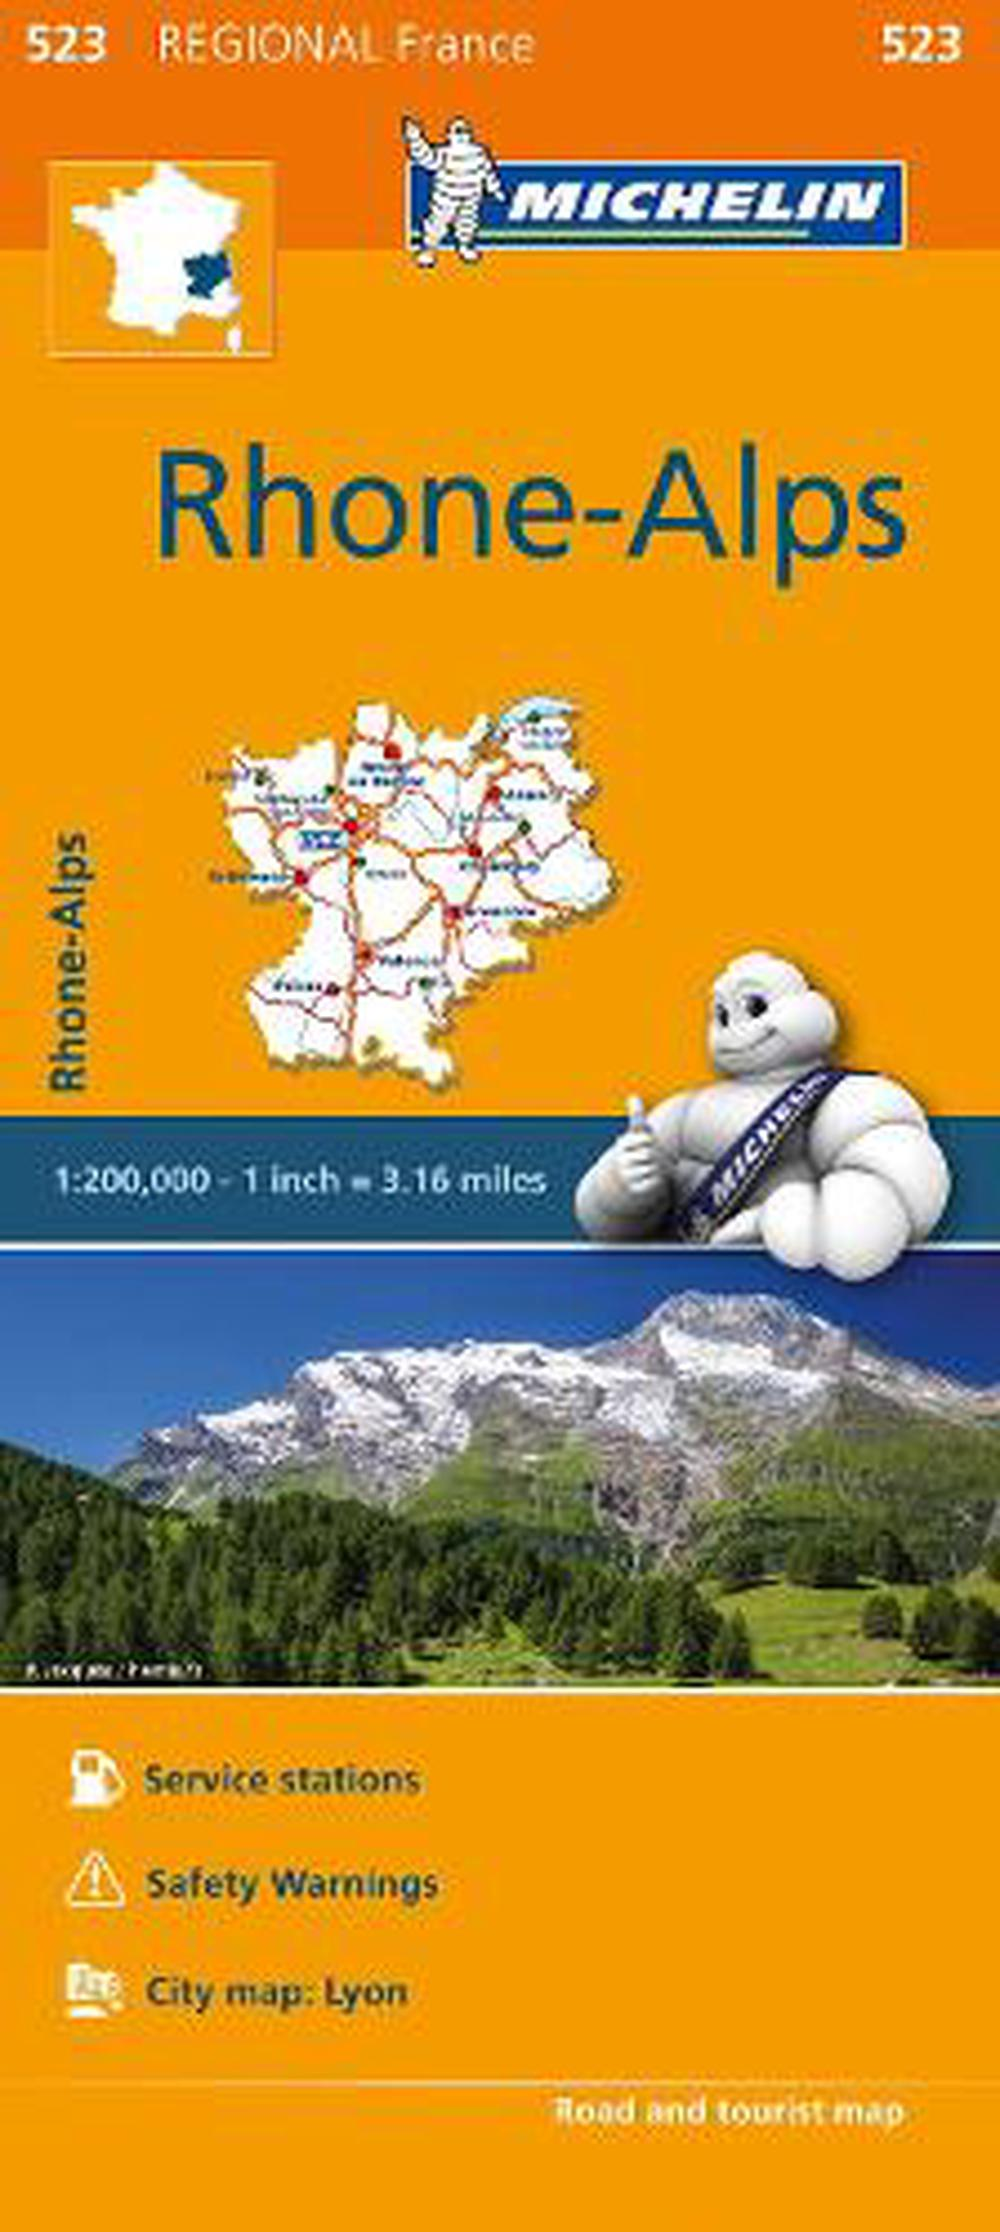 Map Of The Alps In France.Michelin Regional Maps France Rhone Alps Map 523 By Michelin